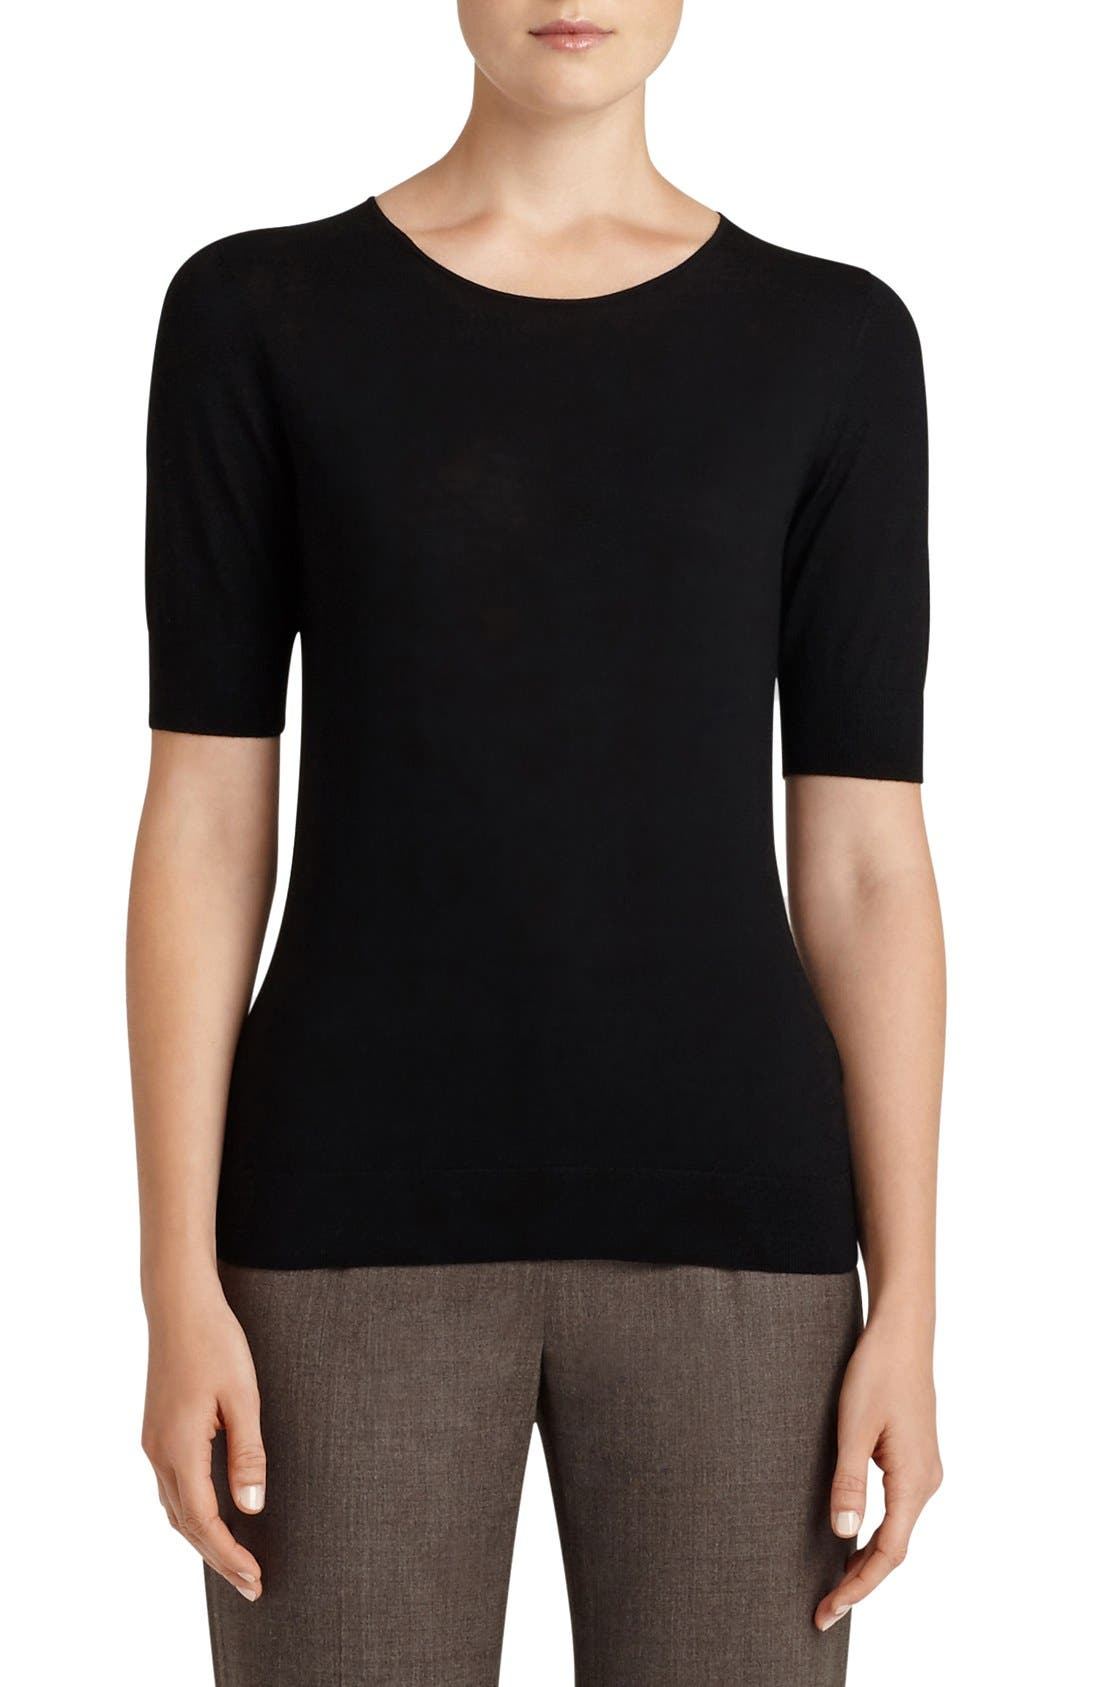 LAFAYETTE 148 NEW YORK Scoop Neck Merino Wool